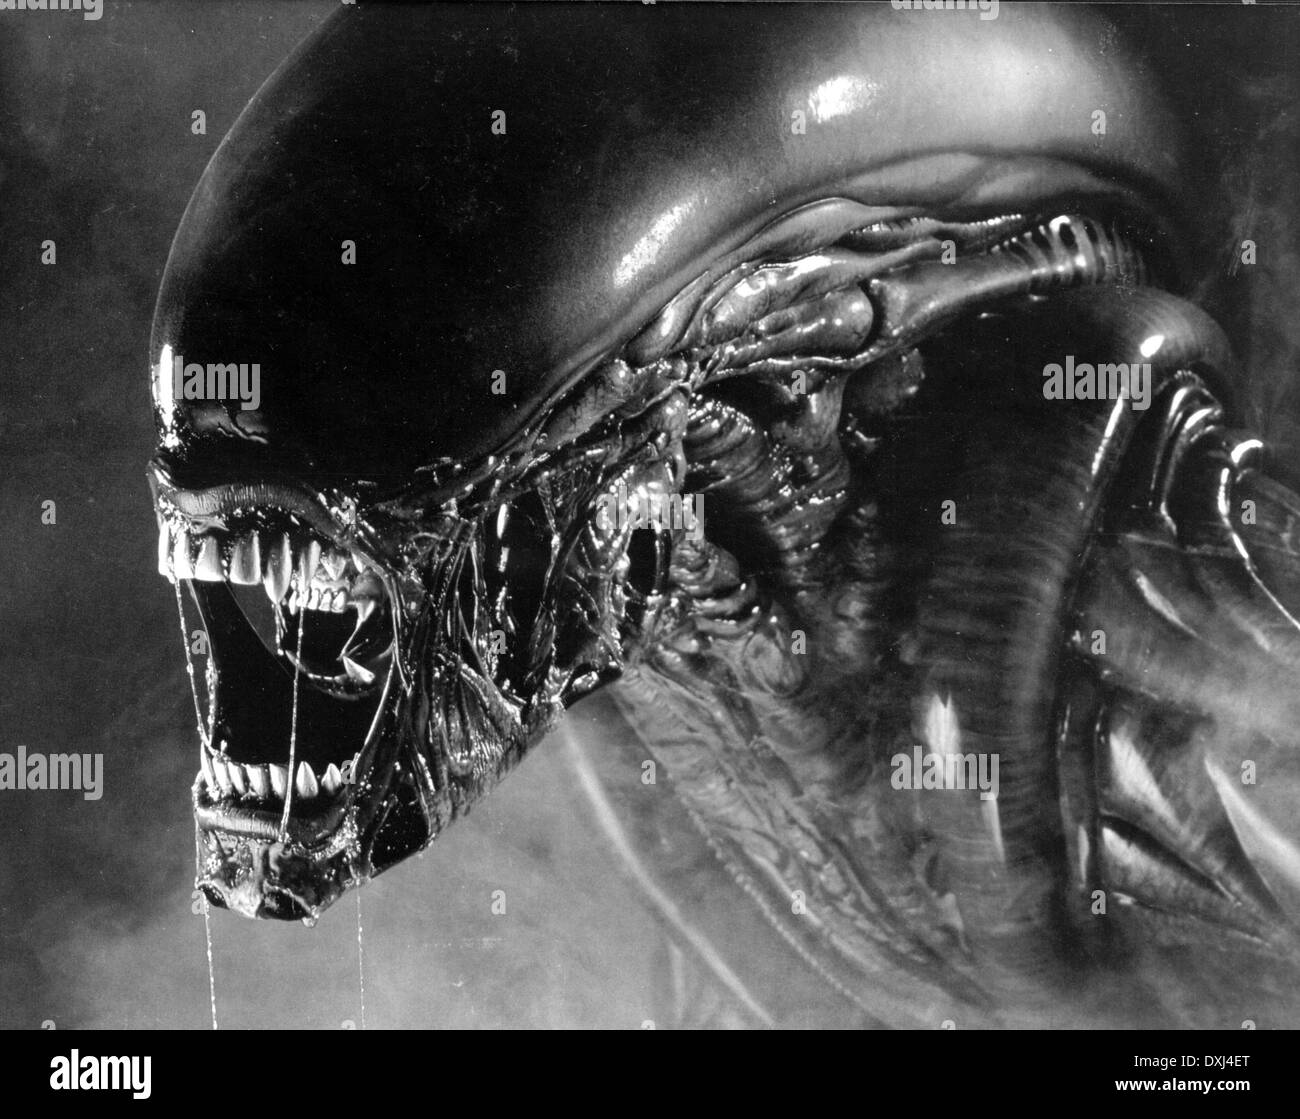 Alien 3 Movie: Alien Movie Stock Photos & Alien Movie Stock Images